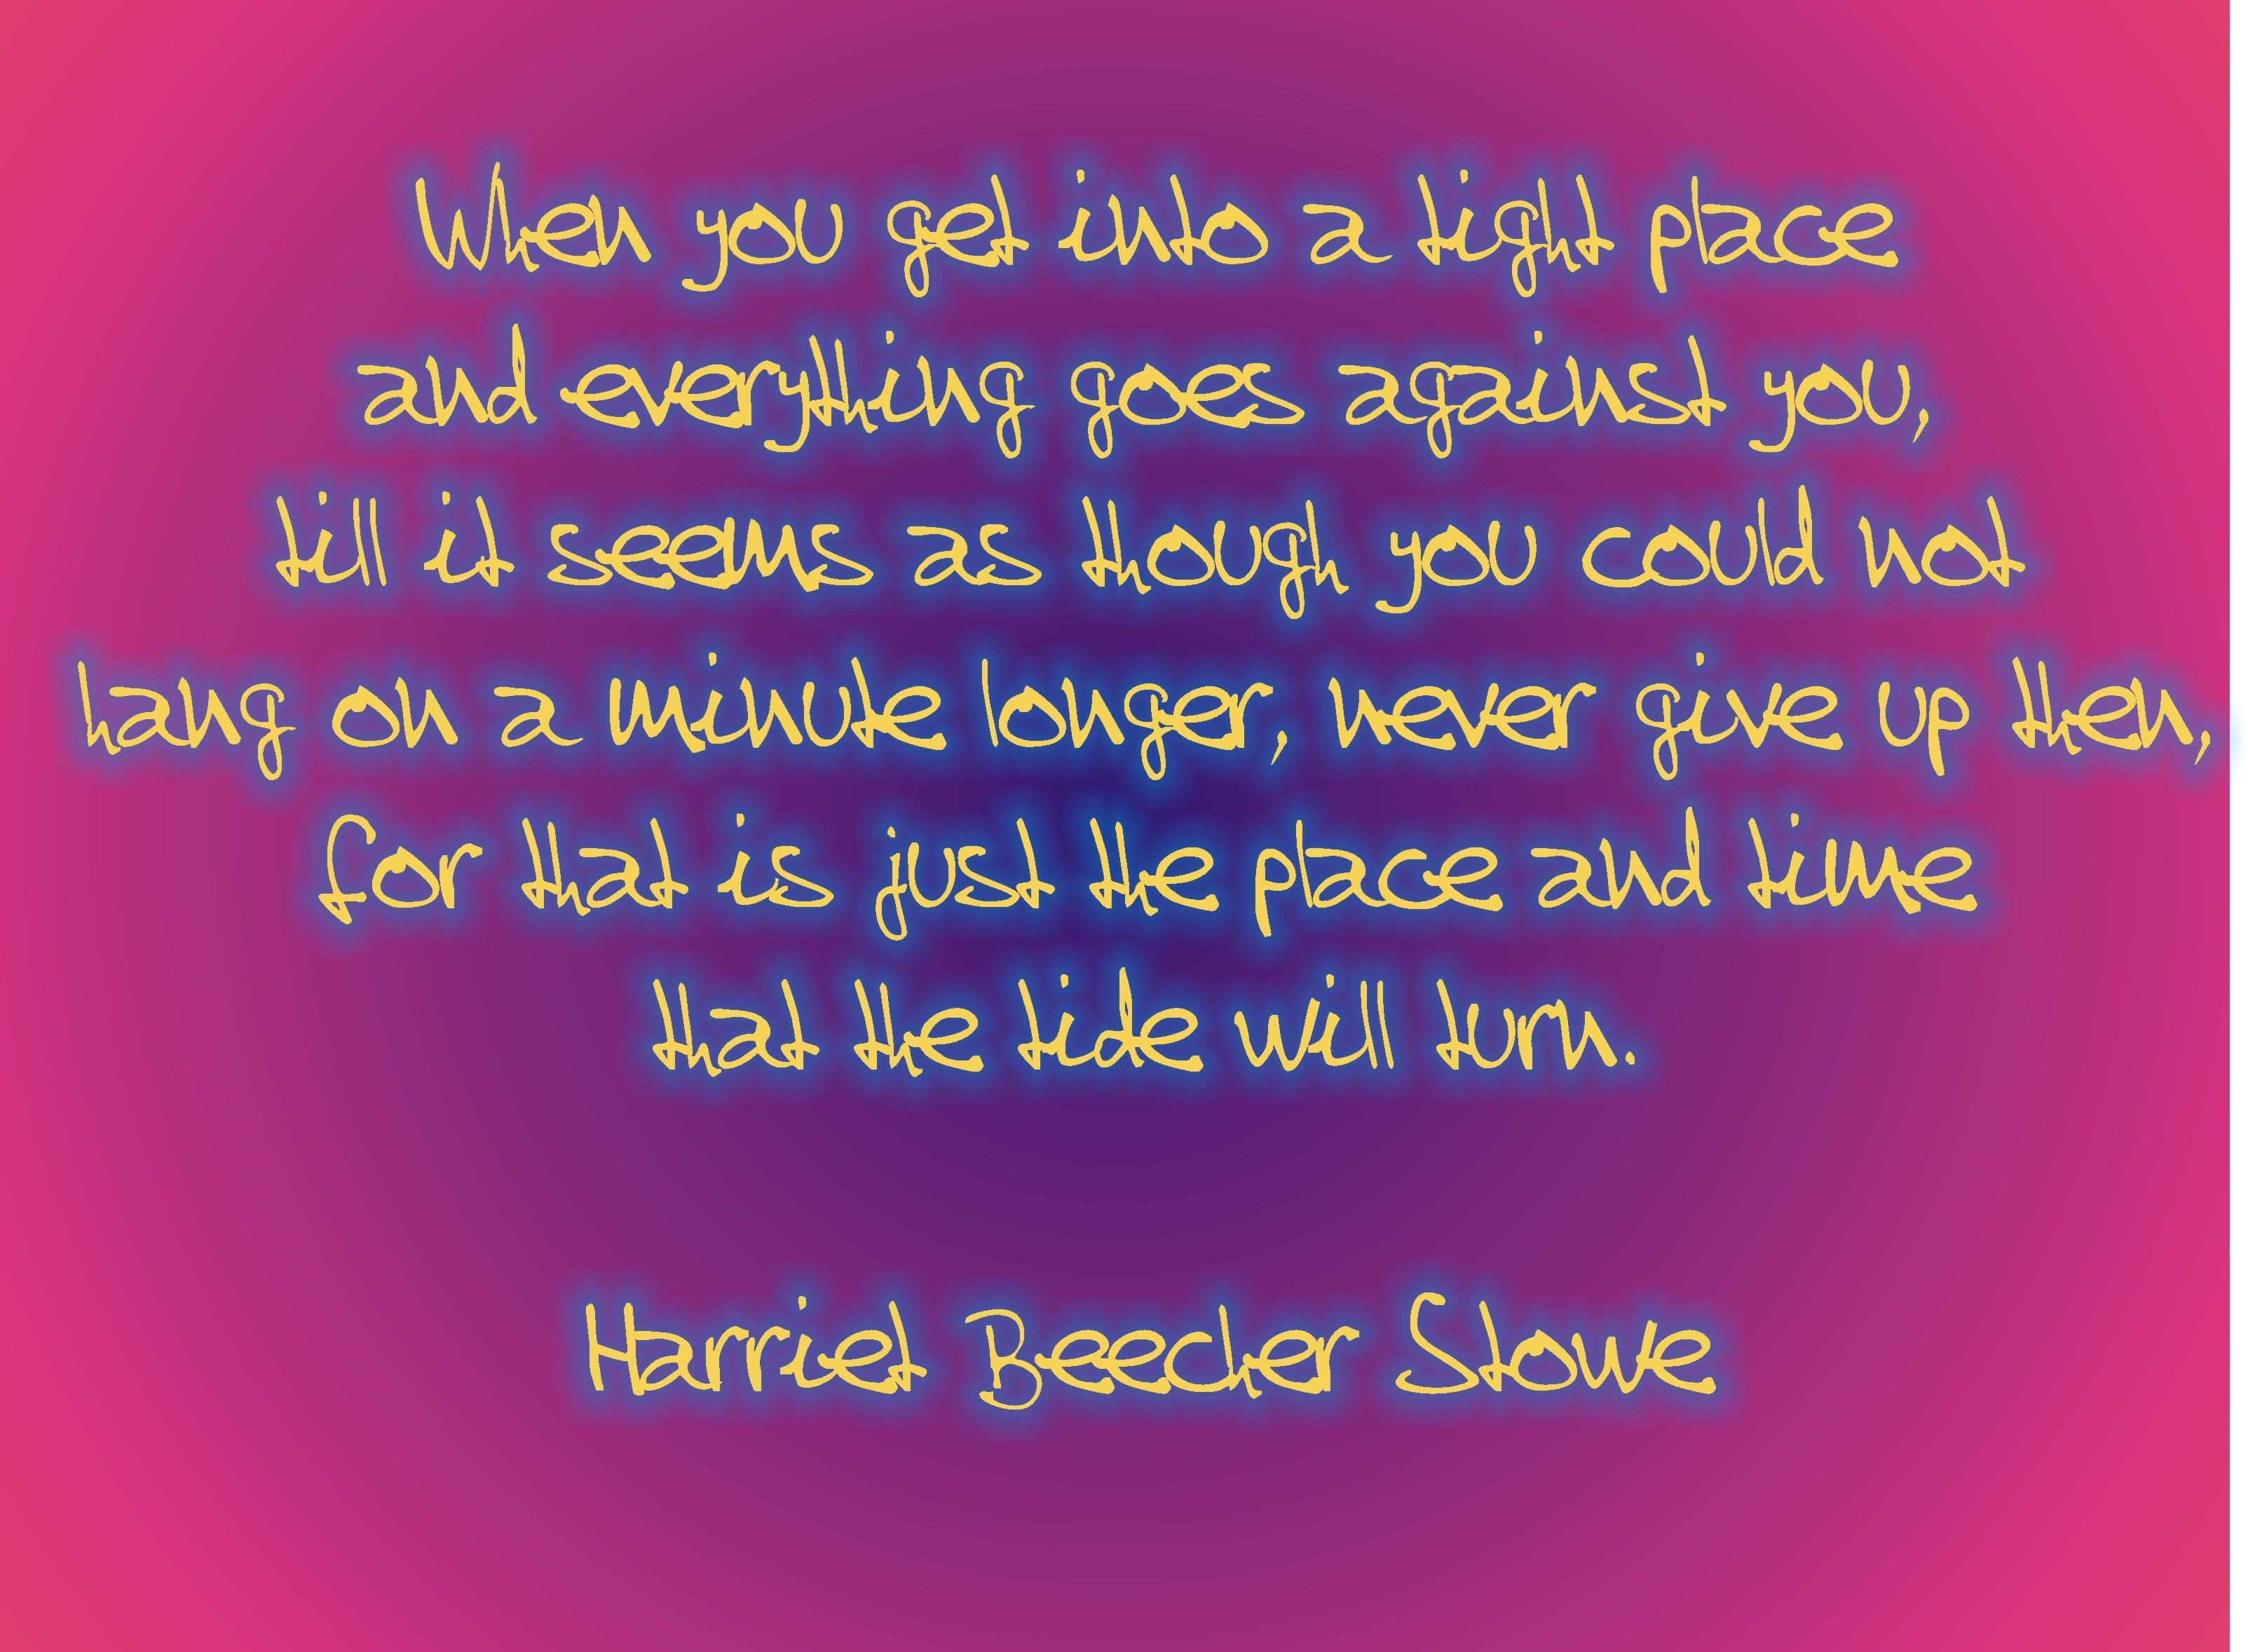 Harriet Beecher Stowe's quote #1